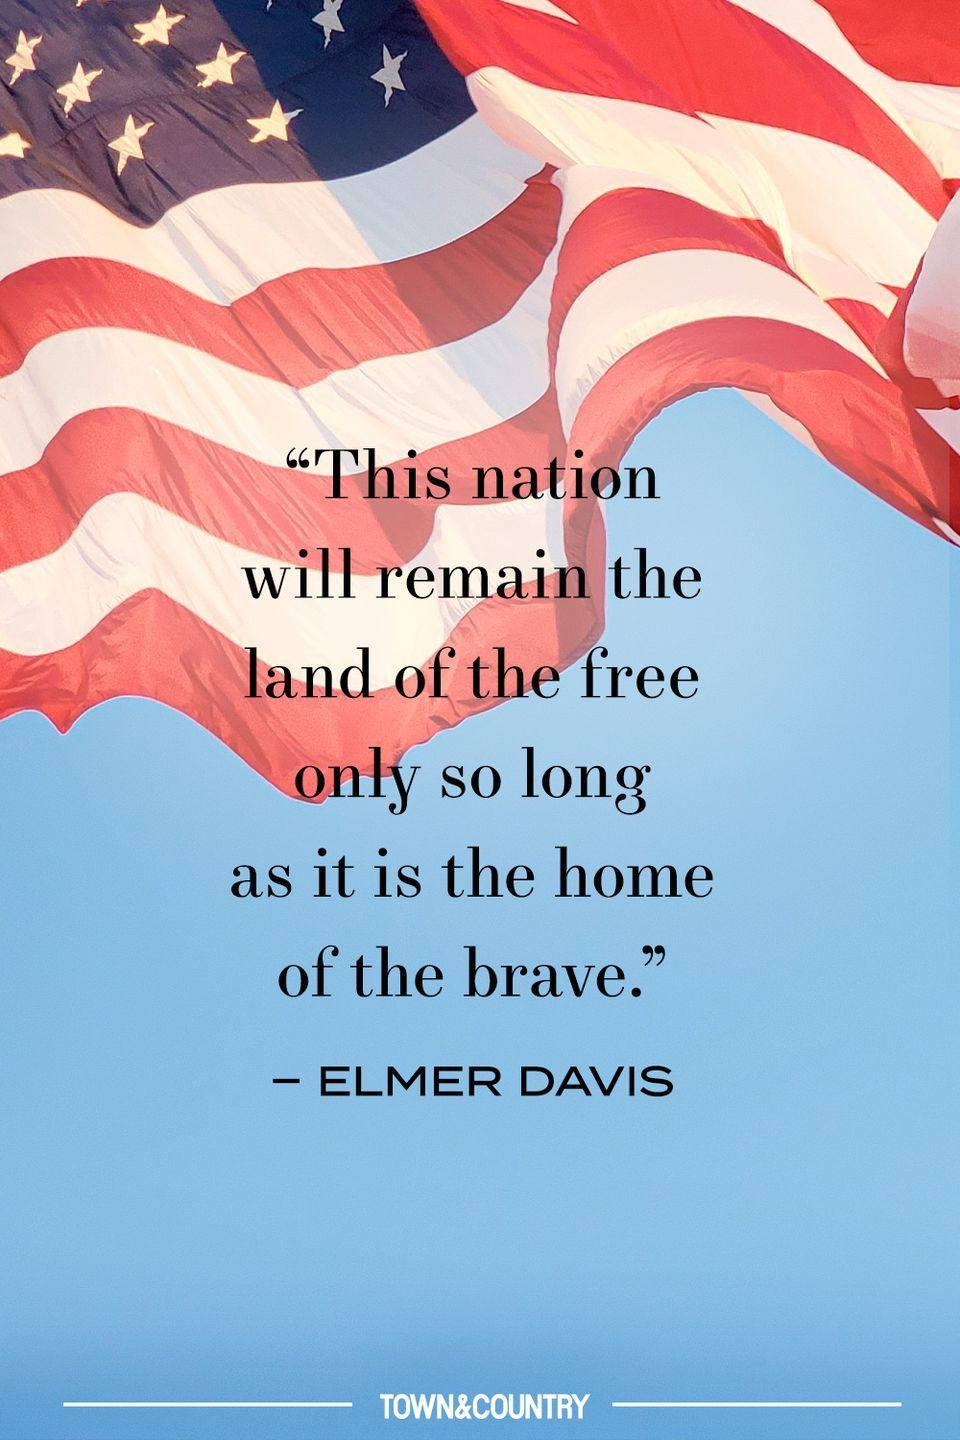 "<p>""This nation will remain the land of the free only so long as it is the home of the brave."" </p><p>– Elmer Davis</p>"